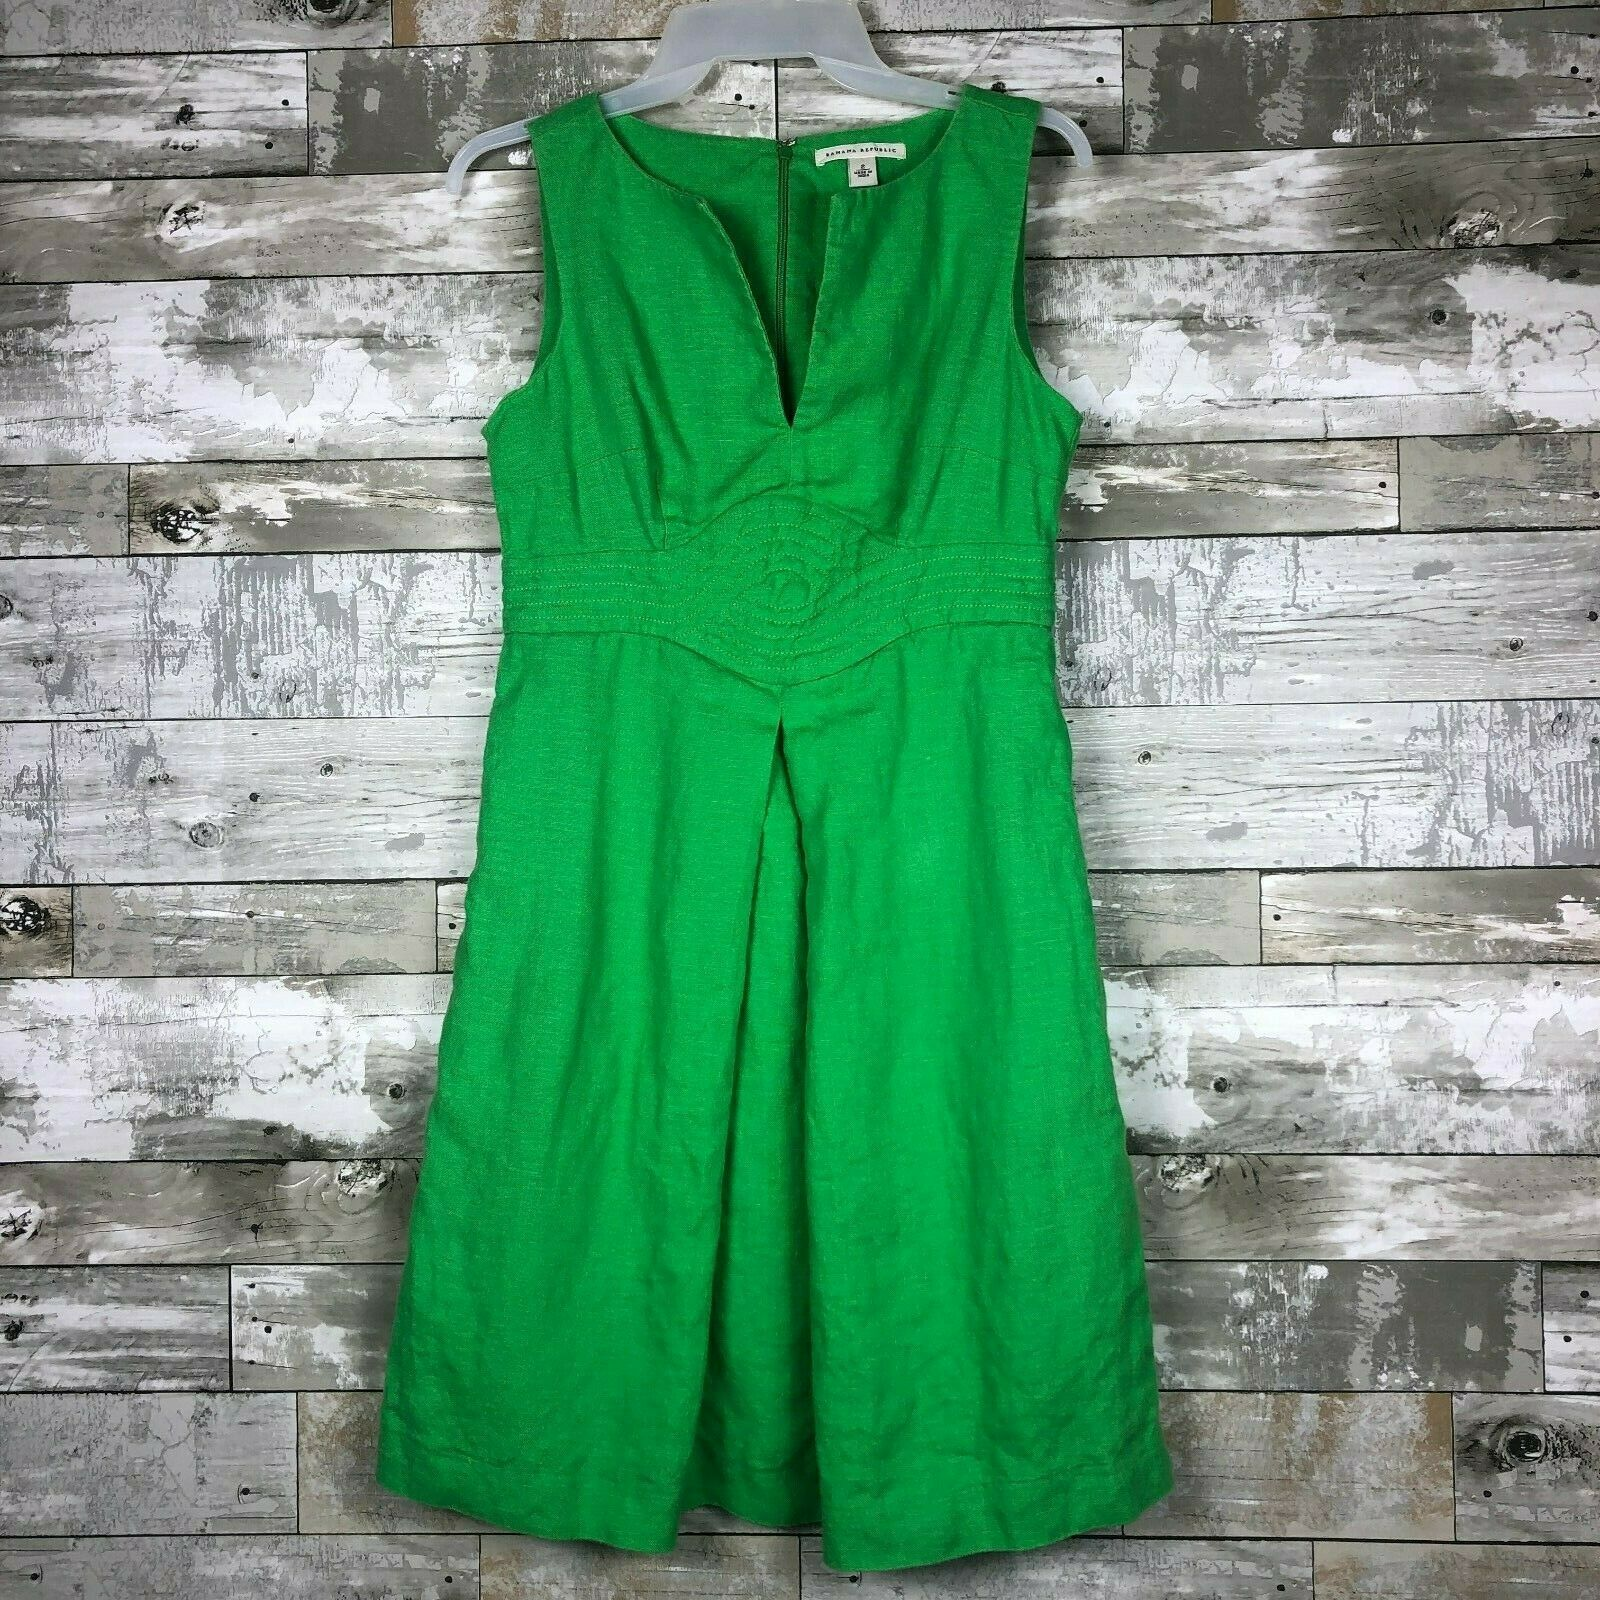 Women's Banana Republic Sleeveless Linen Dress sz 2 green v-neck